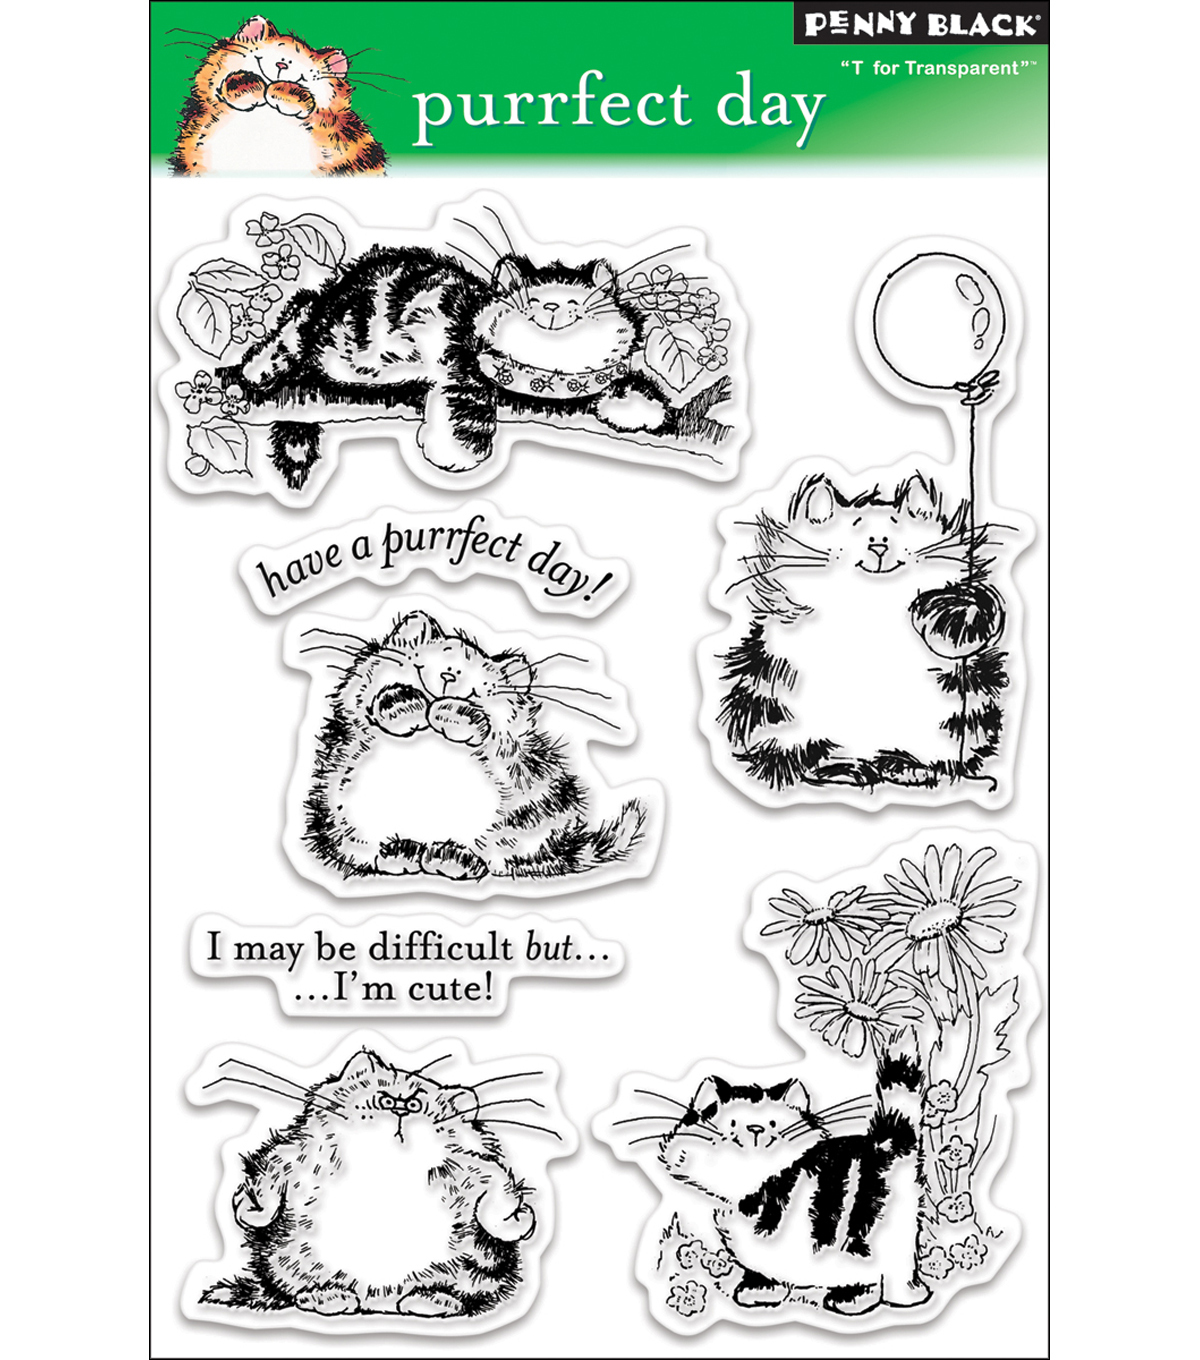 Penny Black Clear Stamps 5\u0022X7.5\u0022 Sheet-Purrfect Day